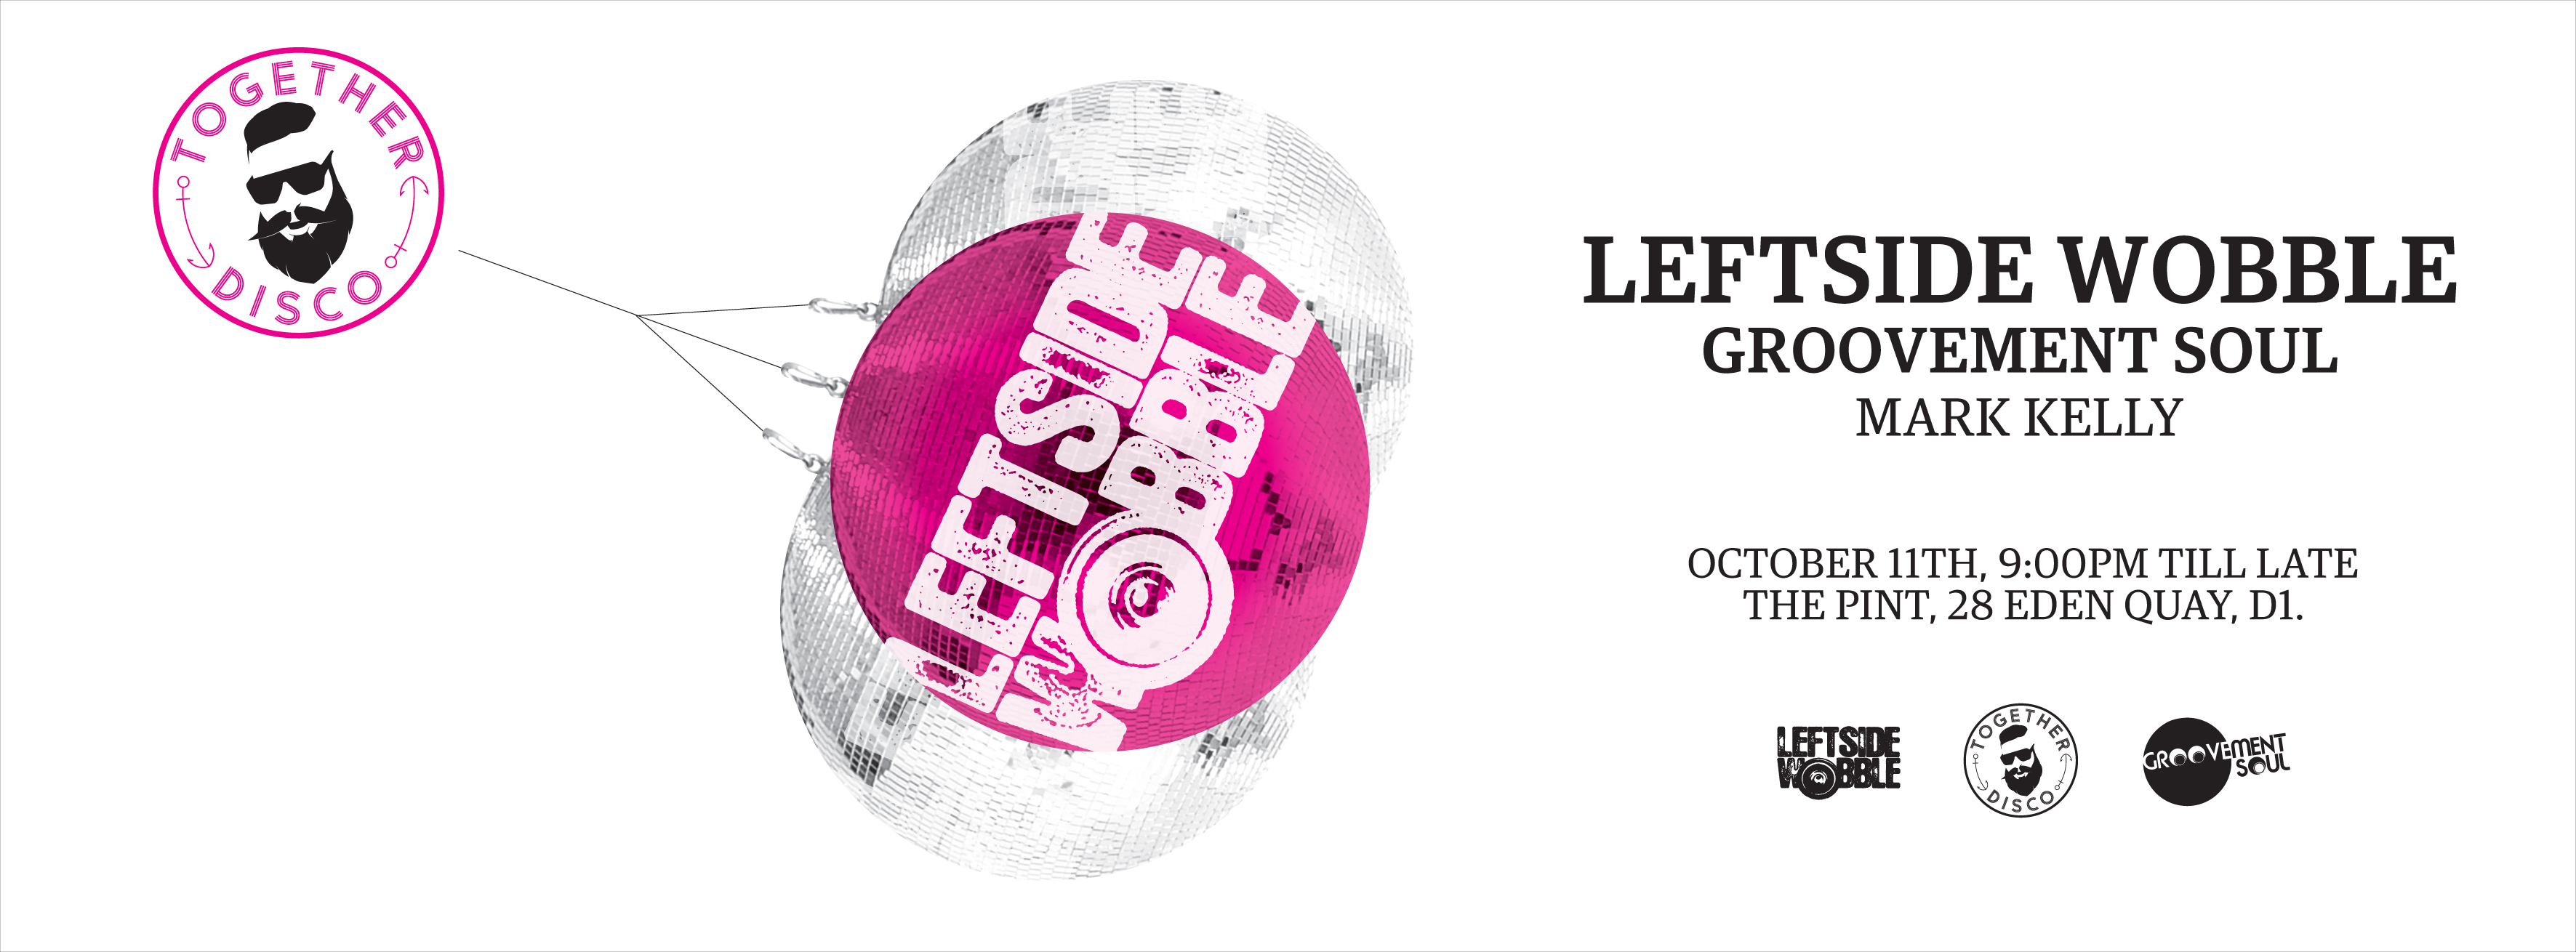 TOGETHER DISCO PRESENTS LEFTSIDE WOBBLE & GROOVEMENT SOUL